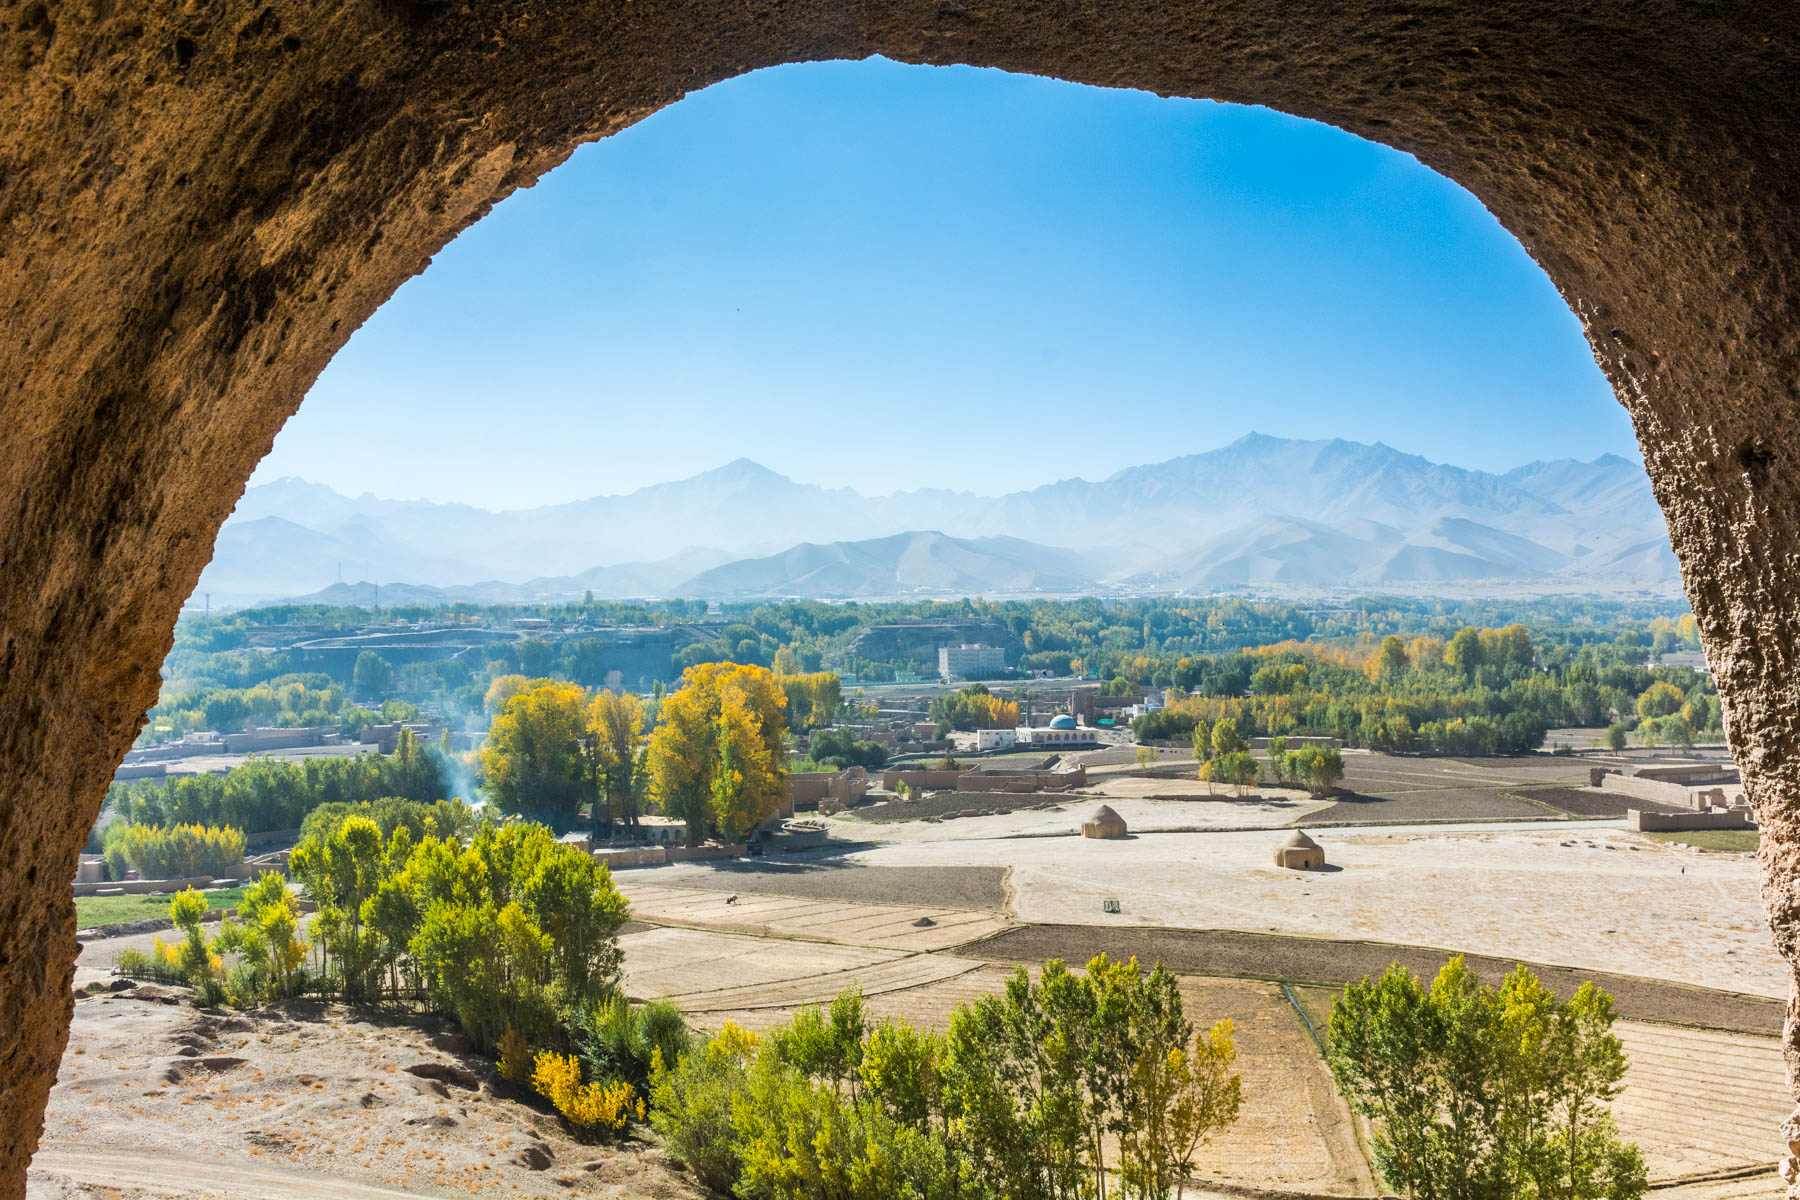 The ultimate Afghanistan travel guide - Lost With Purpose